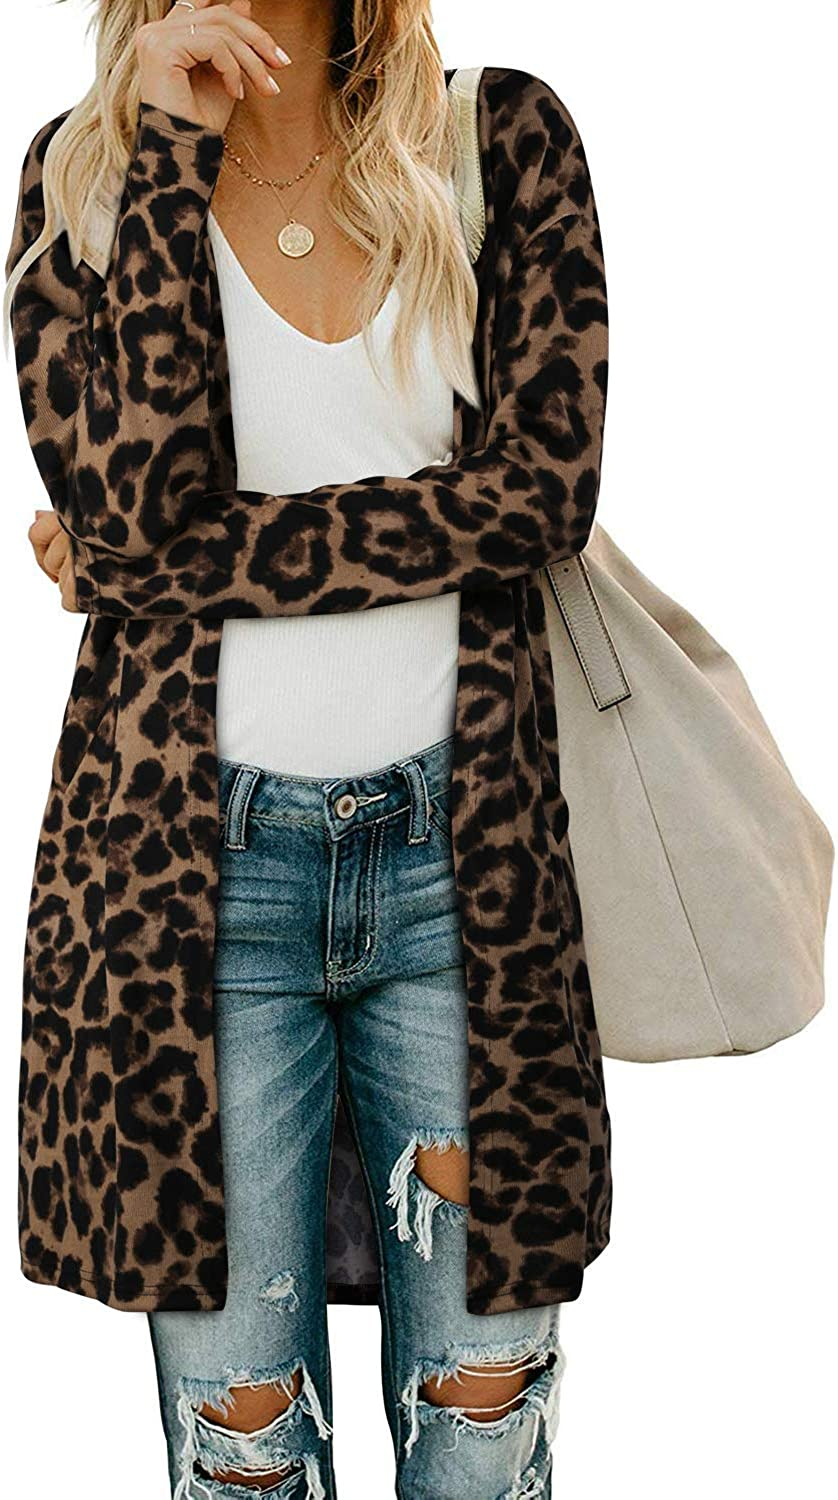 OUGES Women's Open Front Cardigan Shirt with Pockets Long Sleeve Lightweight Coat